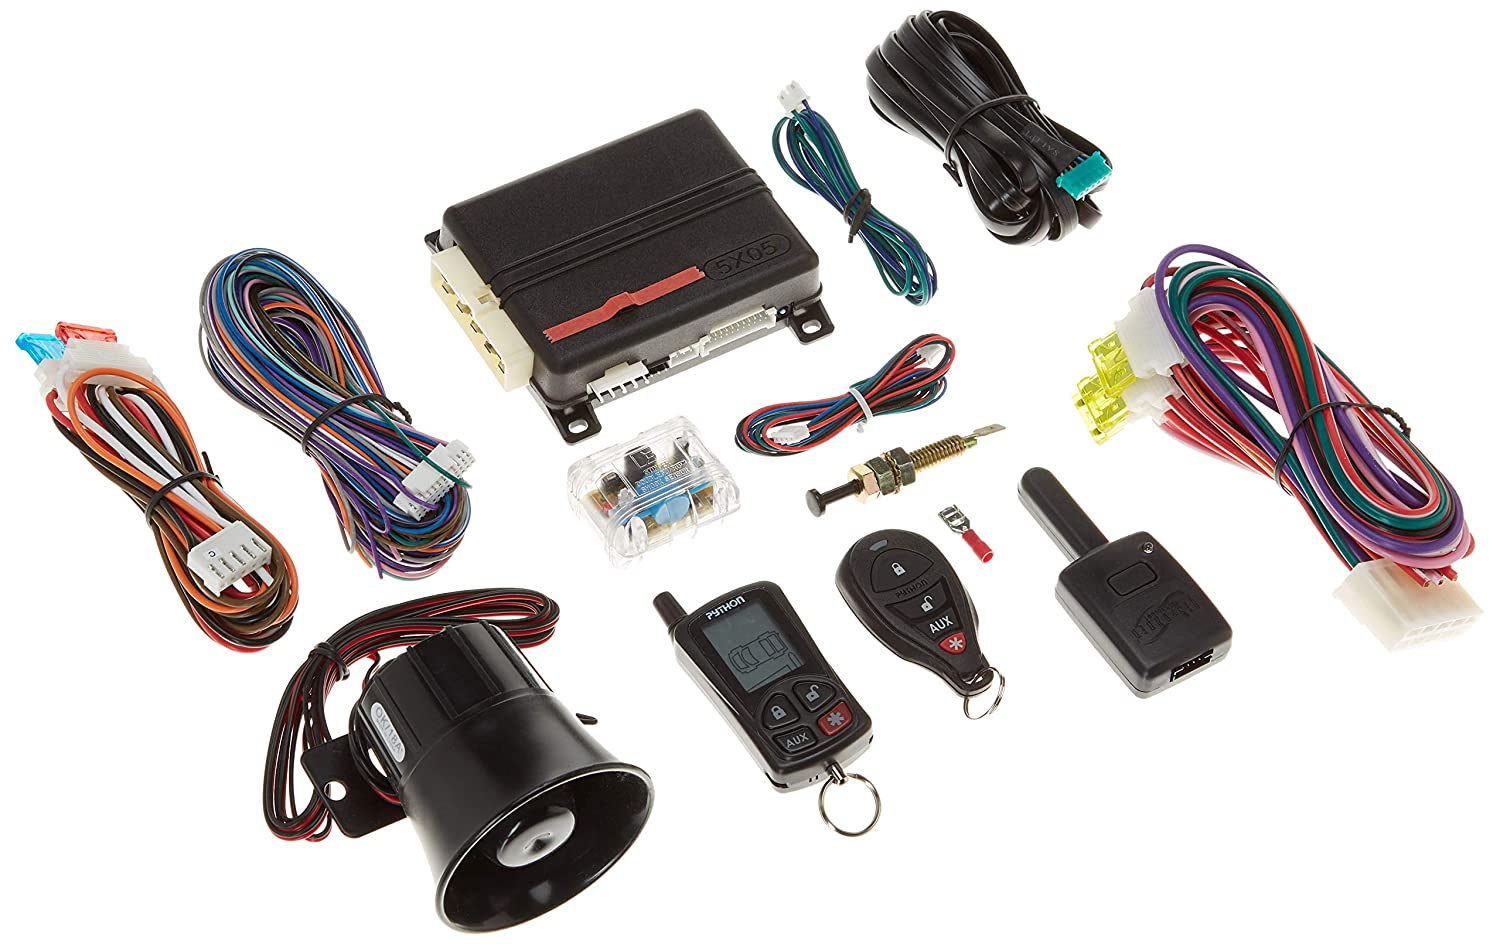 Python 5305P 5305p LCD 2-Way Security /& Remote-Start System with .25-Mile Range /& 2 Remotes